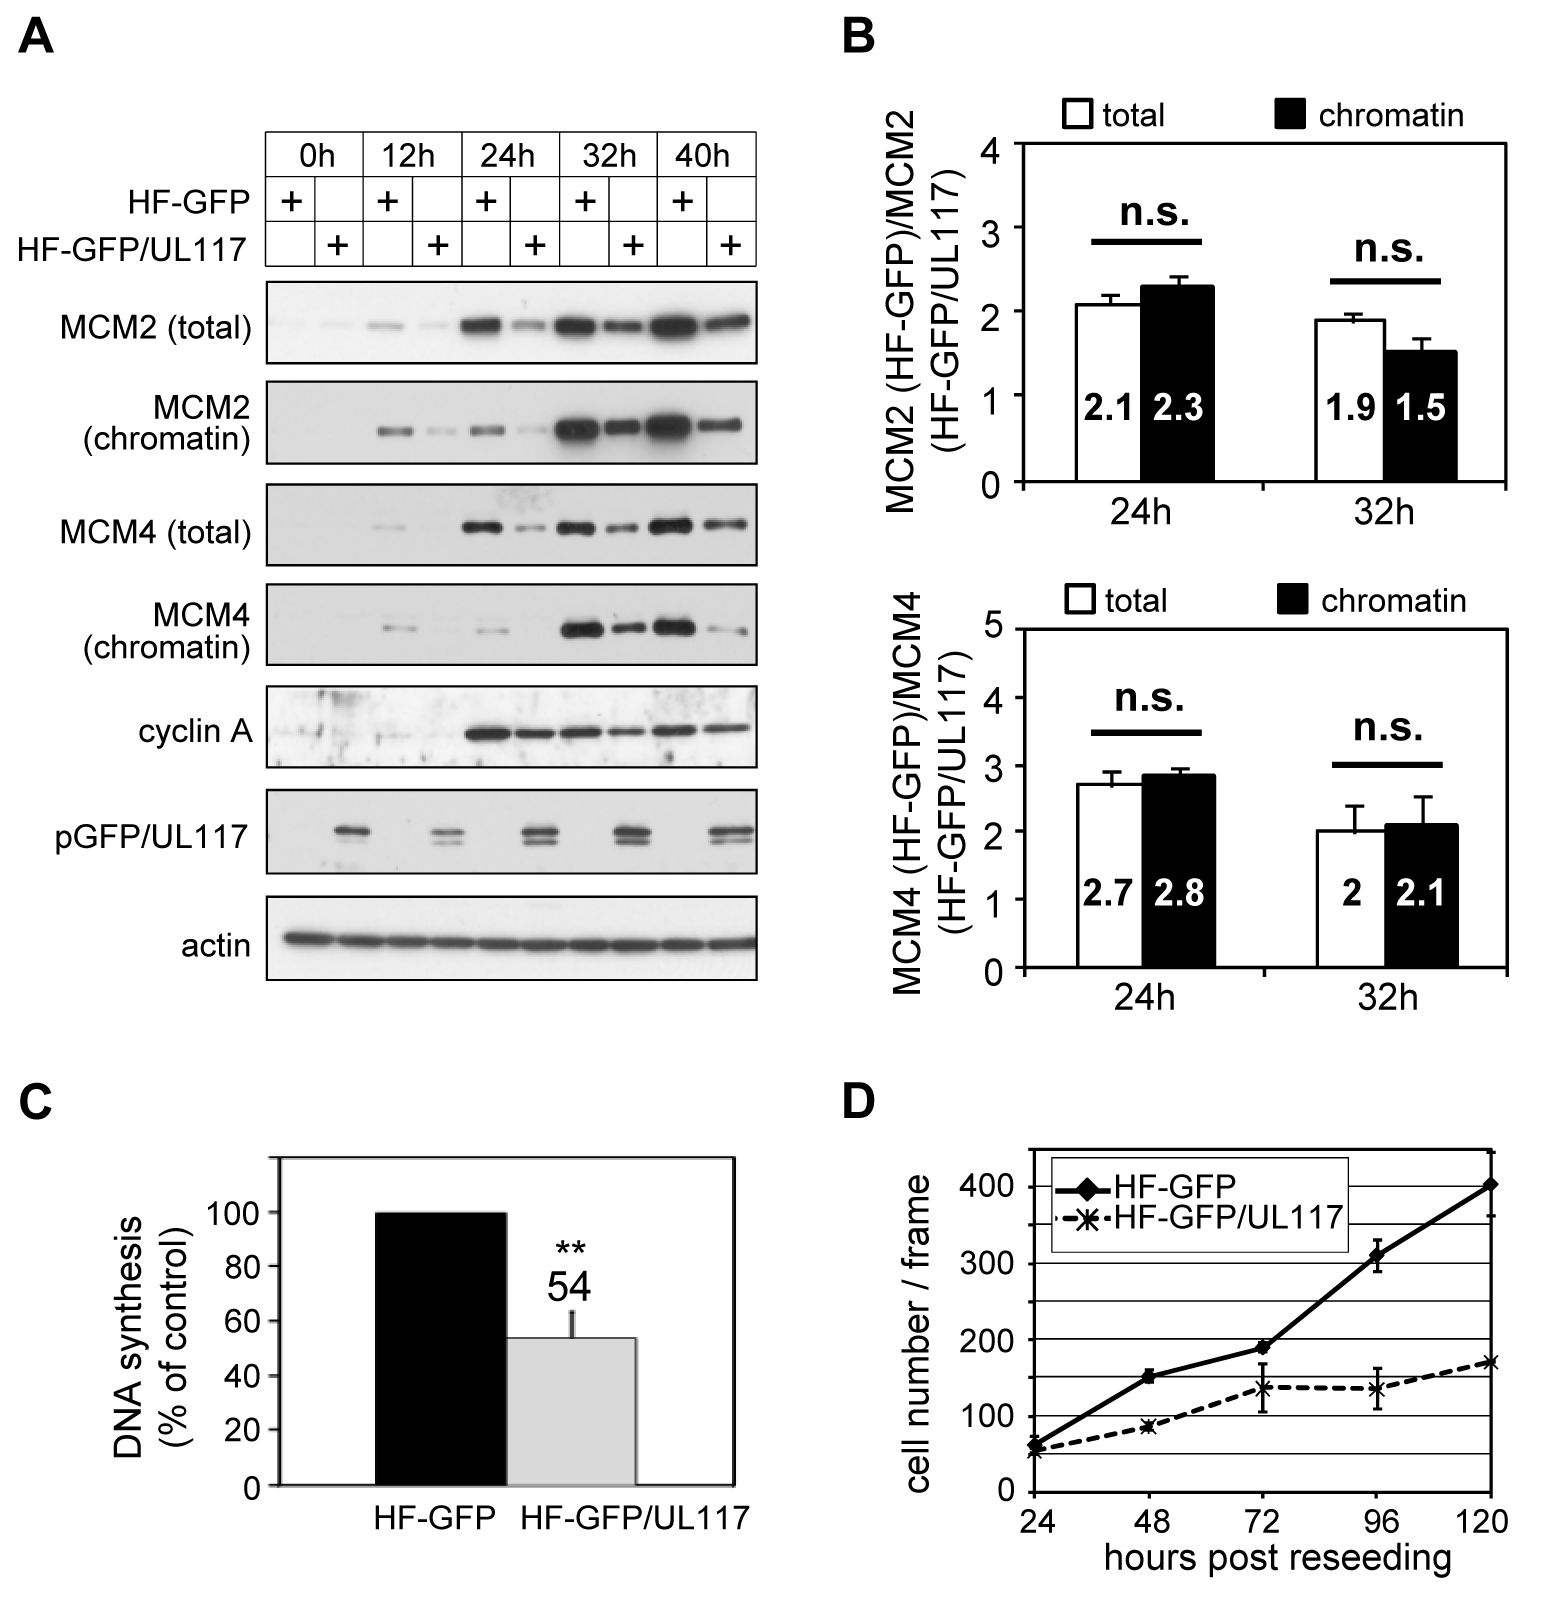 pUL117 was sufficient to inhibit proliferation and cellular DNA replication.